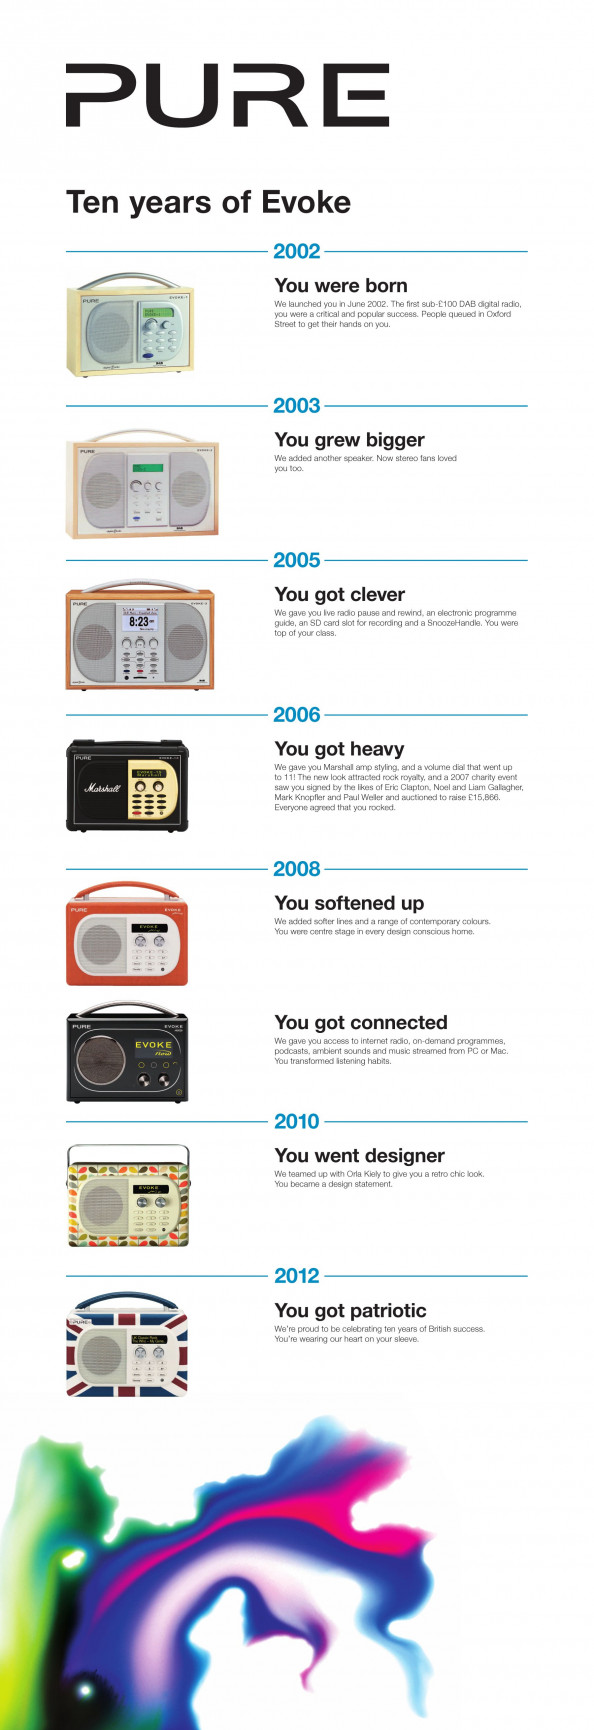 Pure - Ten years of Evoke Infographic